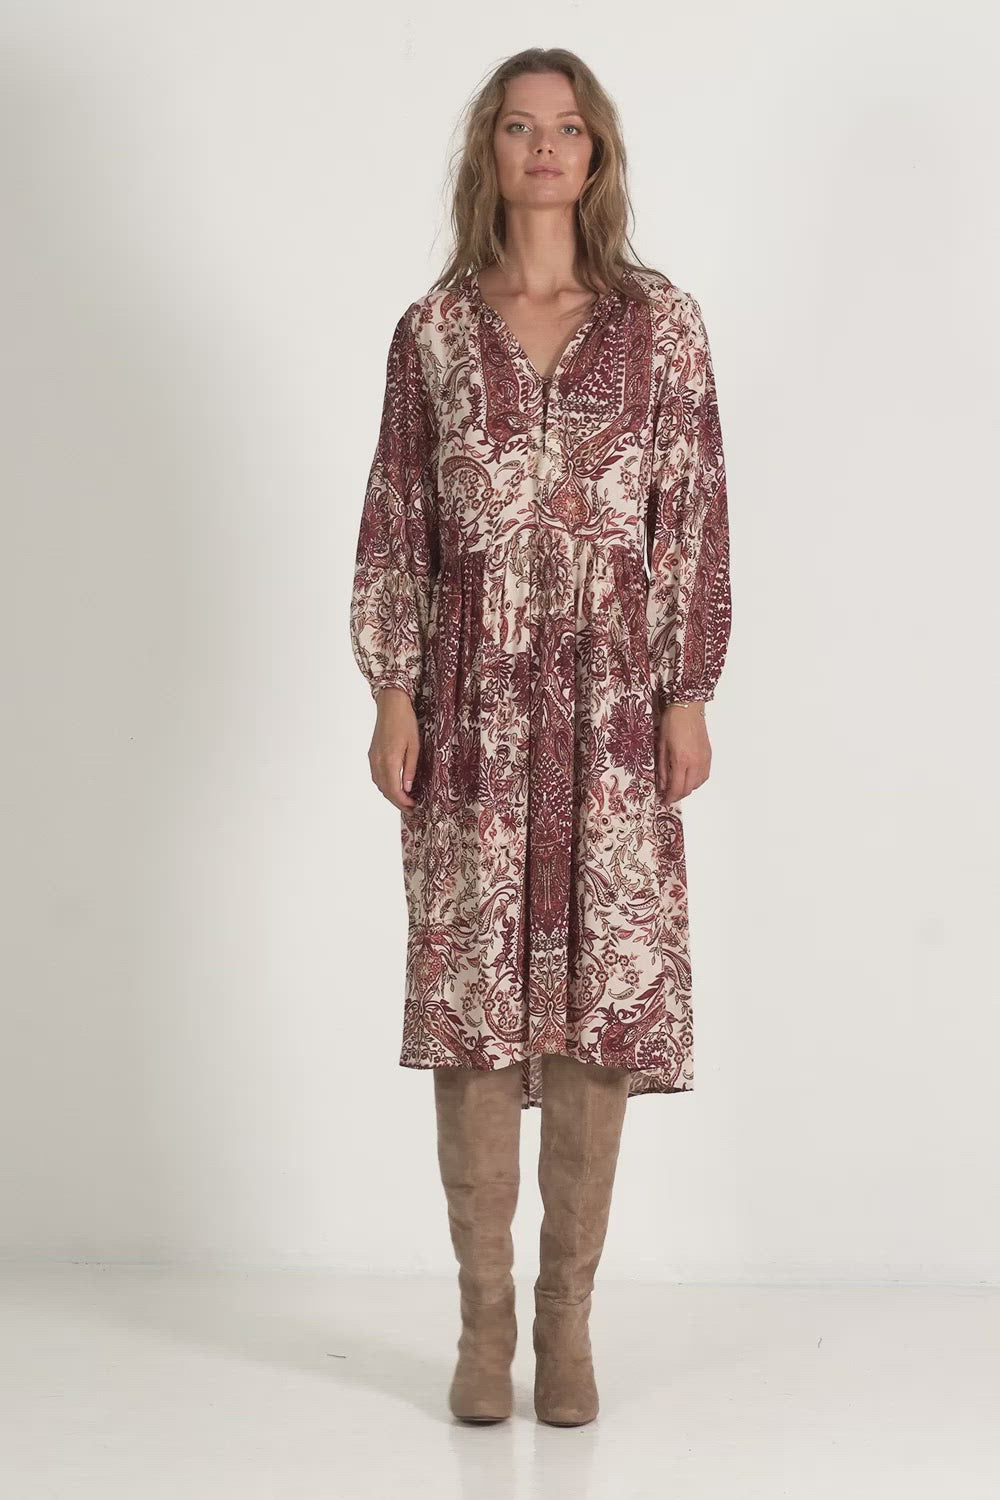 A woman in a casual paisley midi dress for winter by Lilya